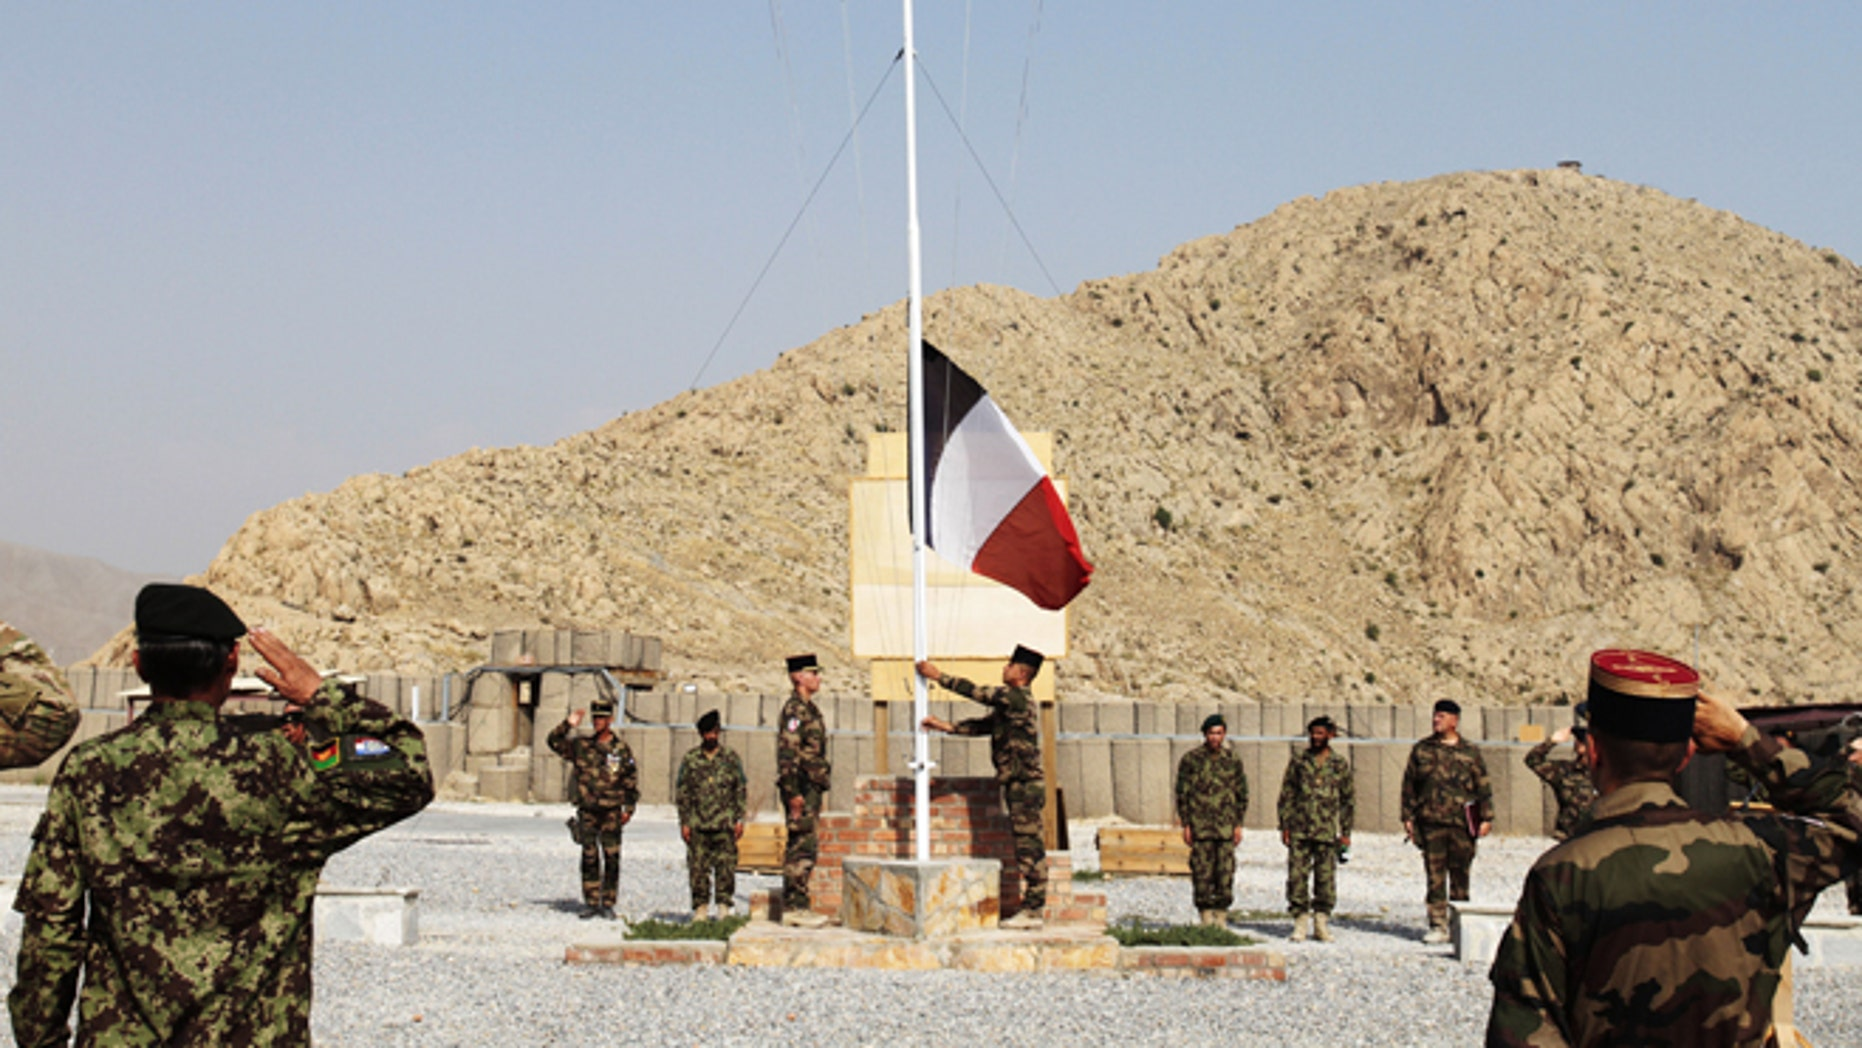 July 31, 2012: French national flag is lowered during a transfer of authority ceremony in Surobi, east of Kabul, Afghanistan.